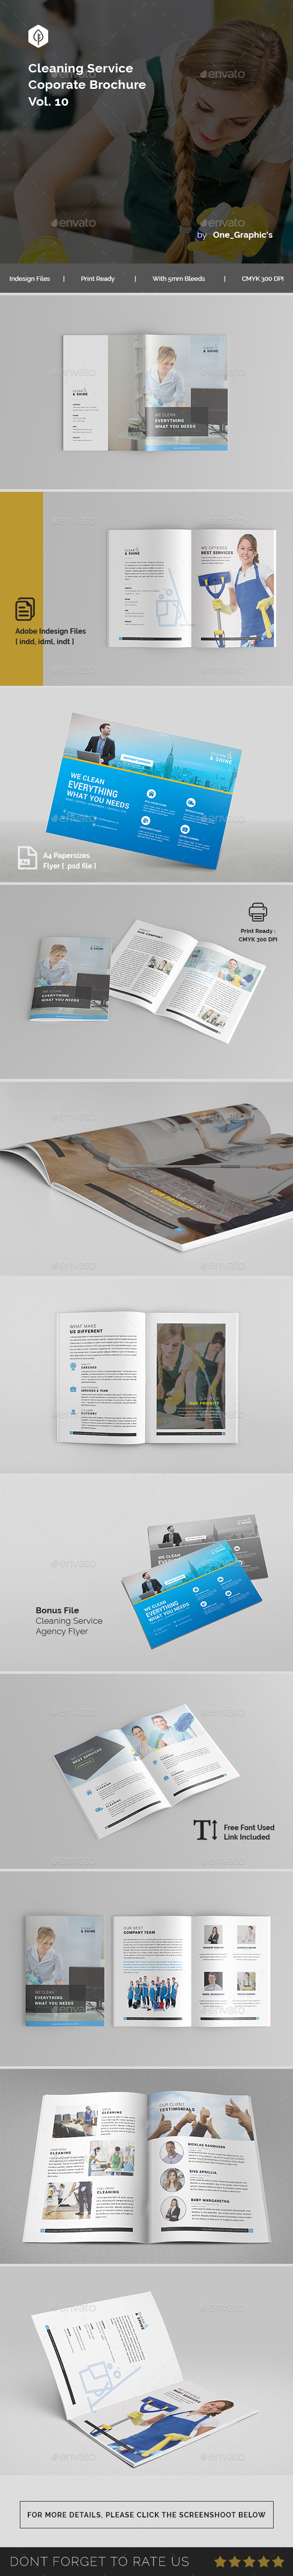 Cleaning Services Brochure Template - Brochures Print Templates